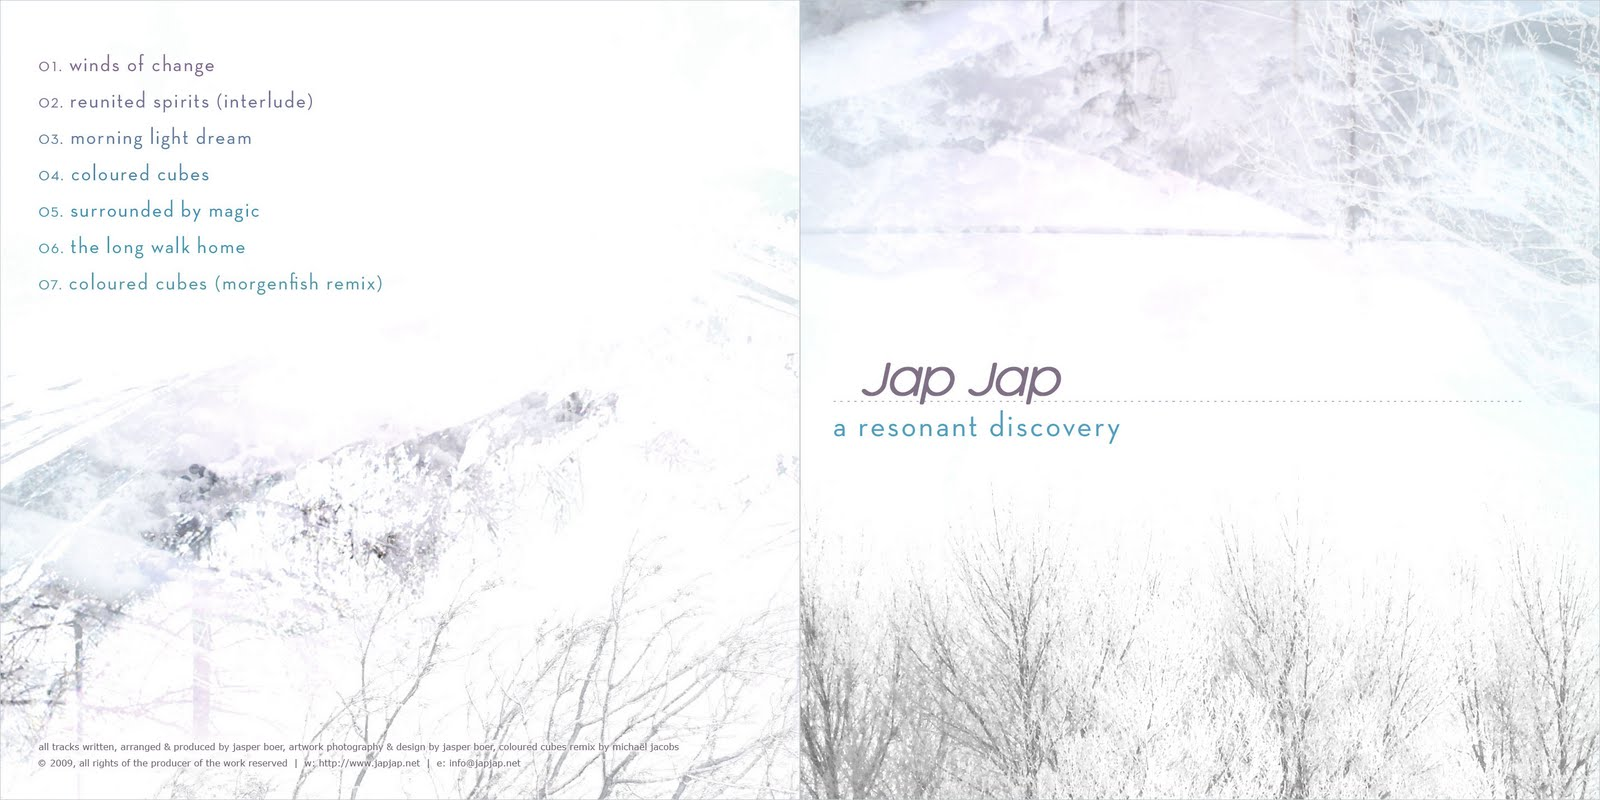 Jap Jap - A Resonant Discovery